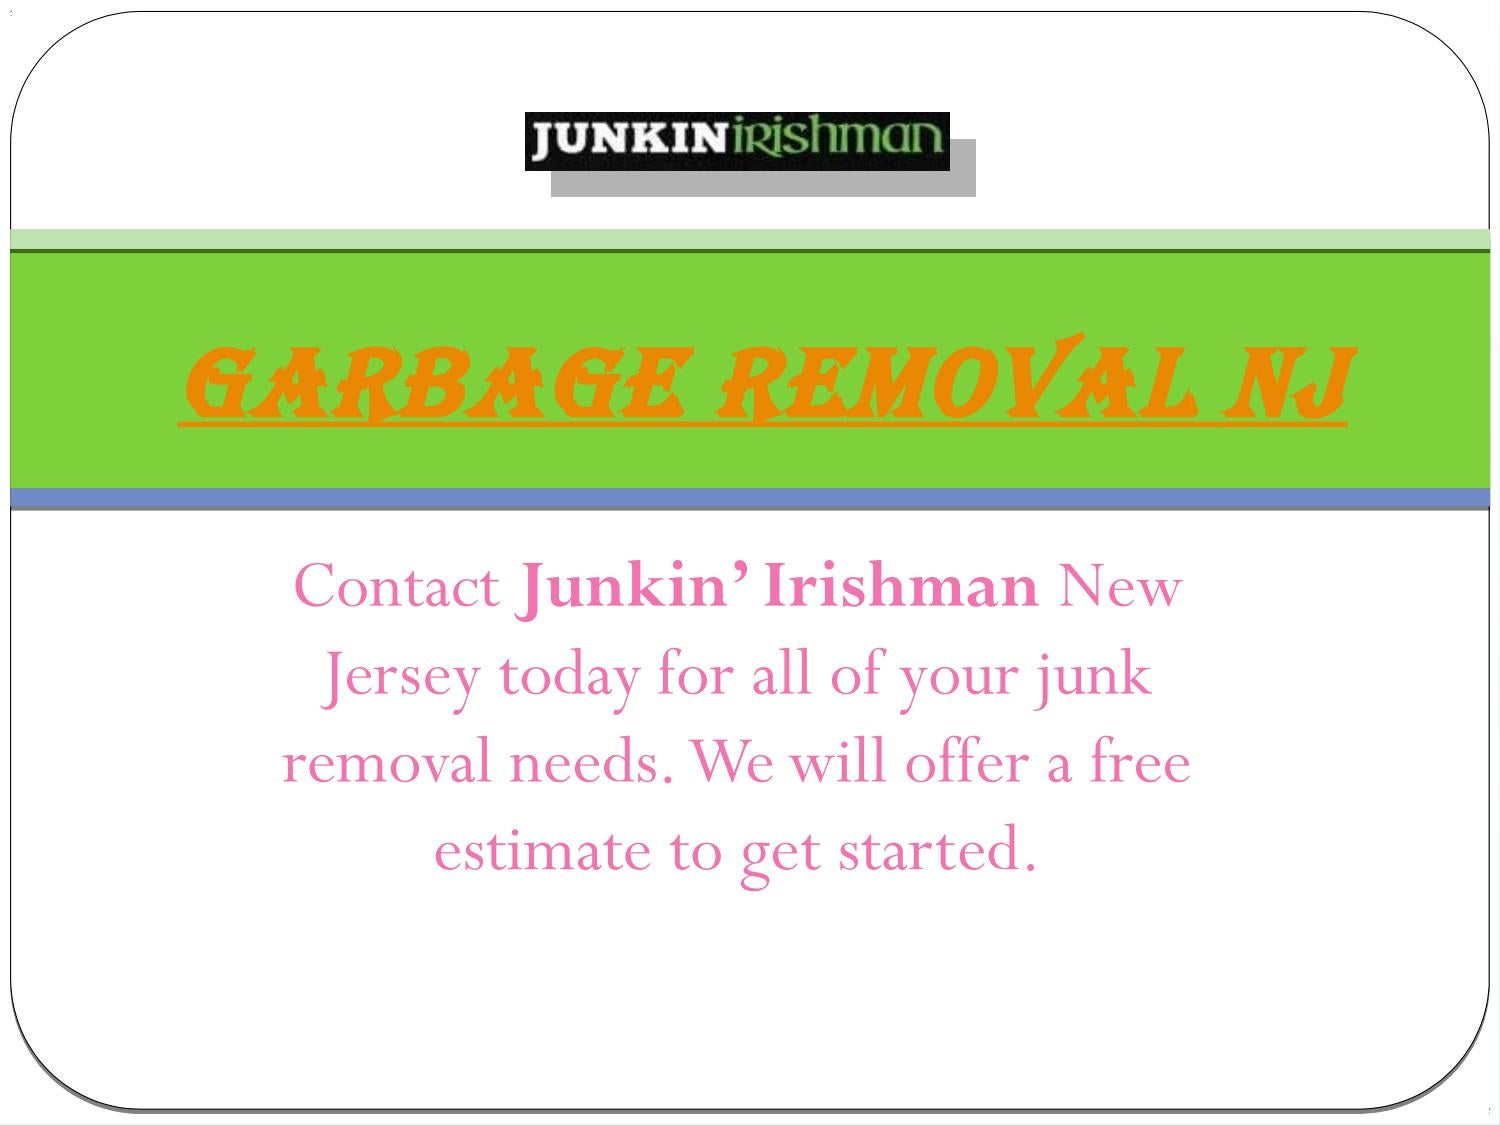 Garbage Removal NJ | Junkin' Irishman by Junkin Irishman - issuu